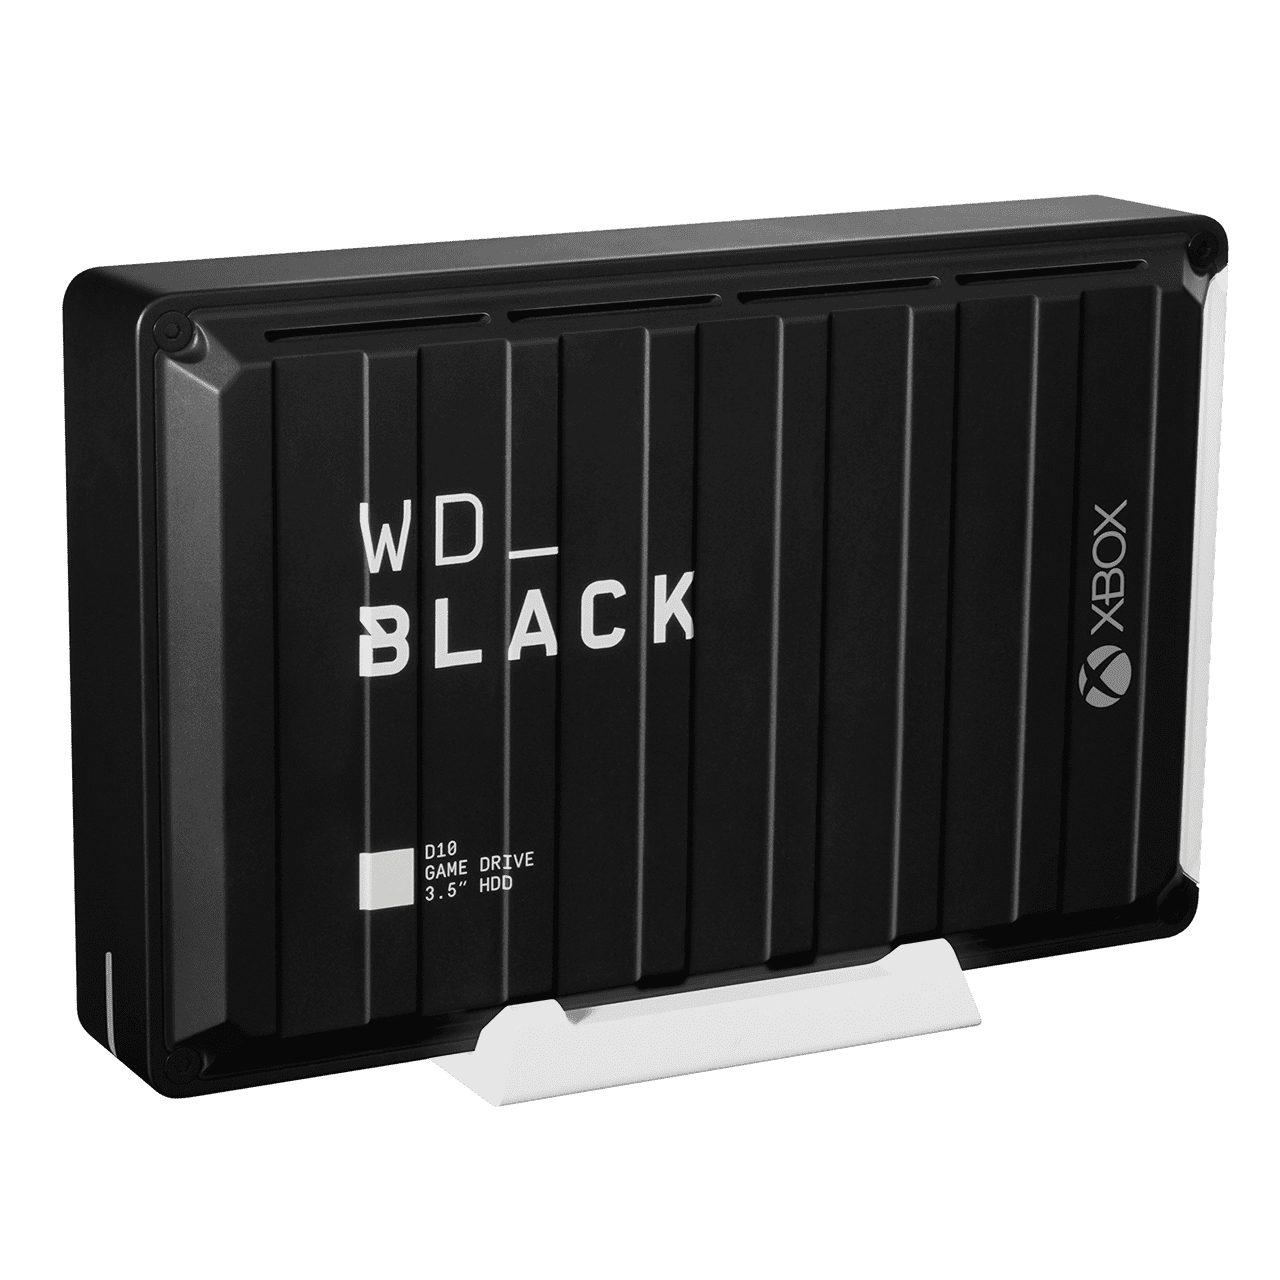 WD Black D10 Game Drive 12TB Black External Hard Drive for Xbox